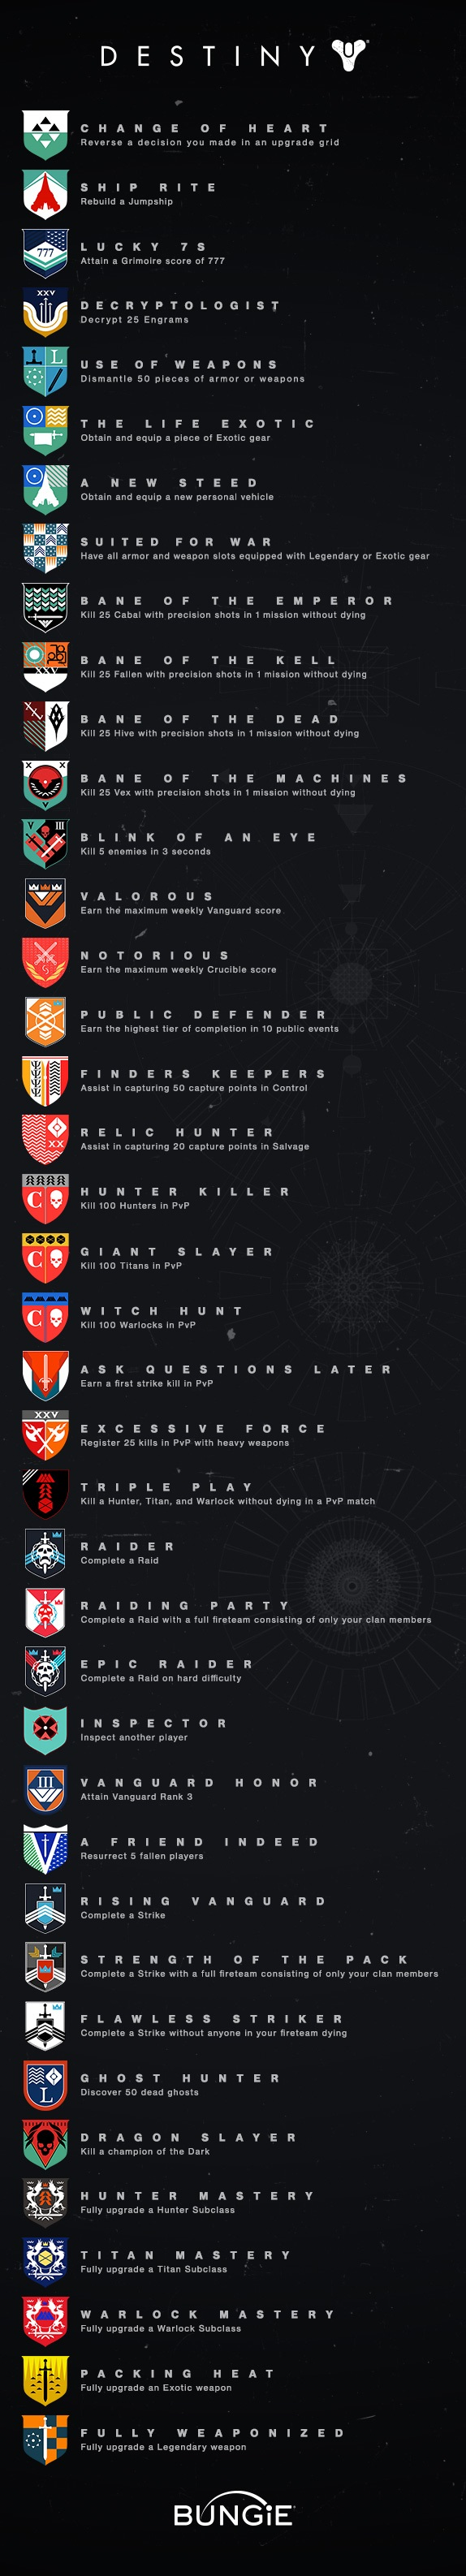 Destiny Trophy & Achievement List